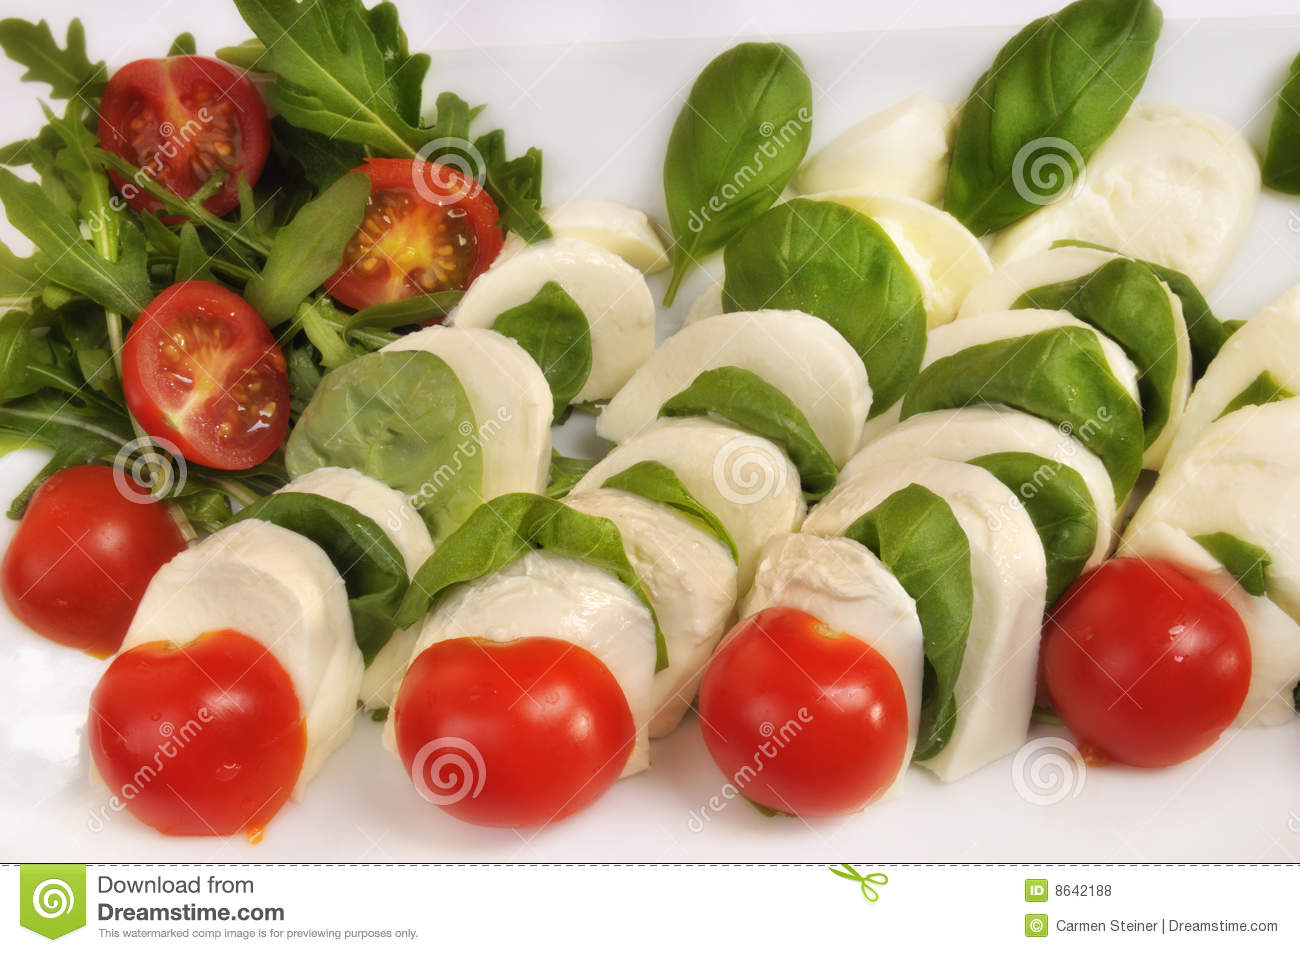 ... Caprese salad with mozzarella cheese, plum tomatoes and basil